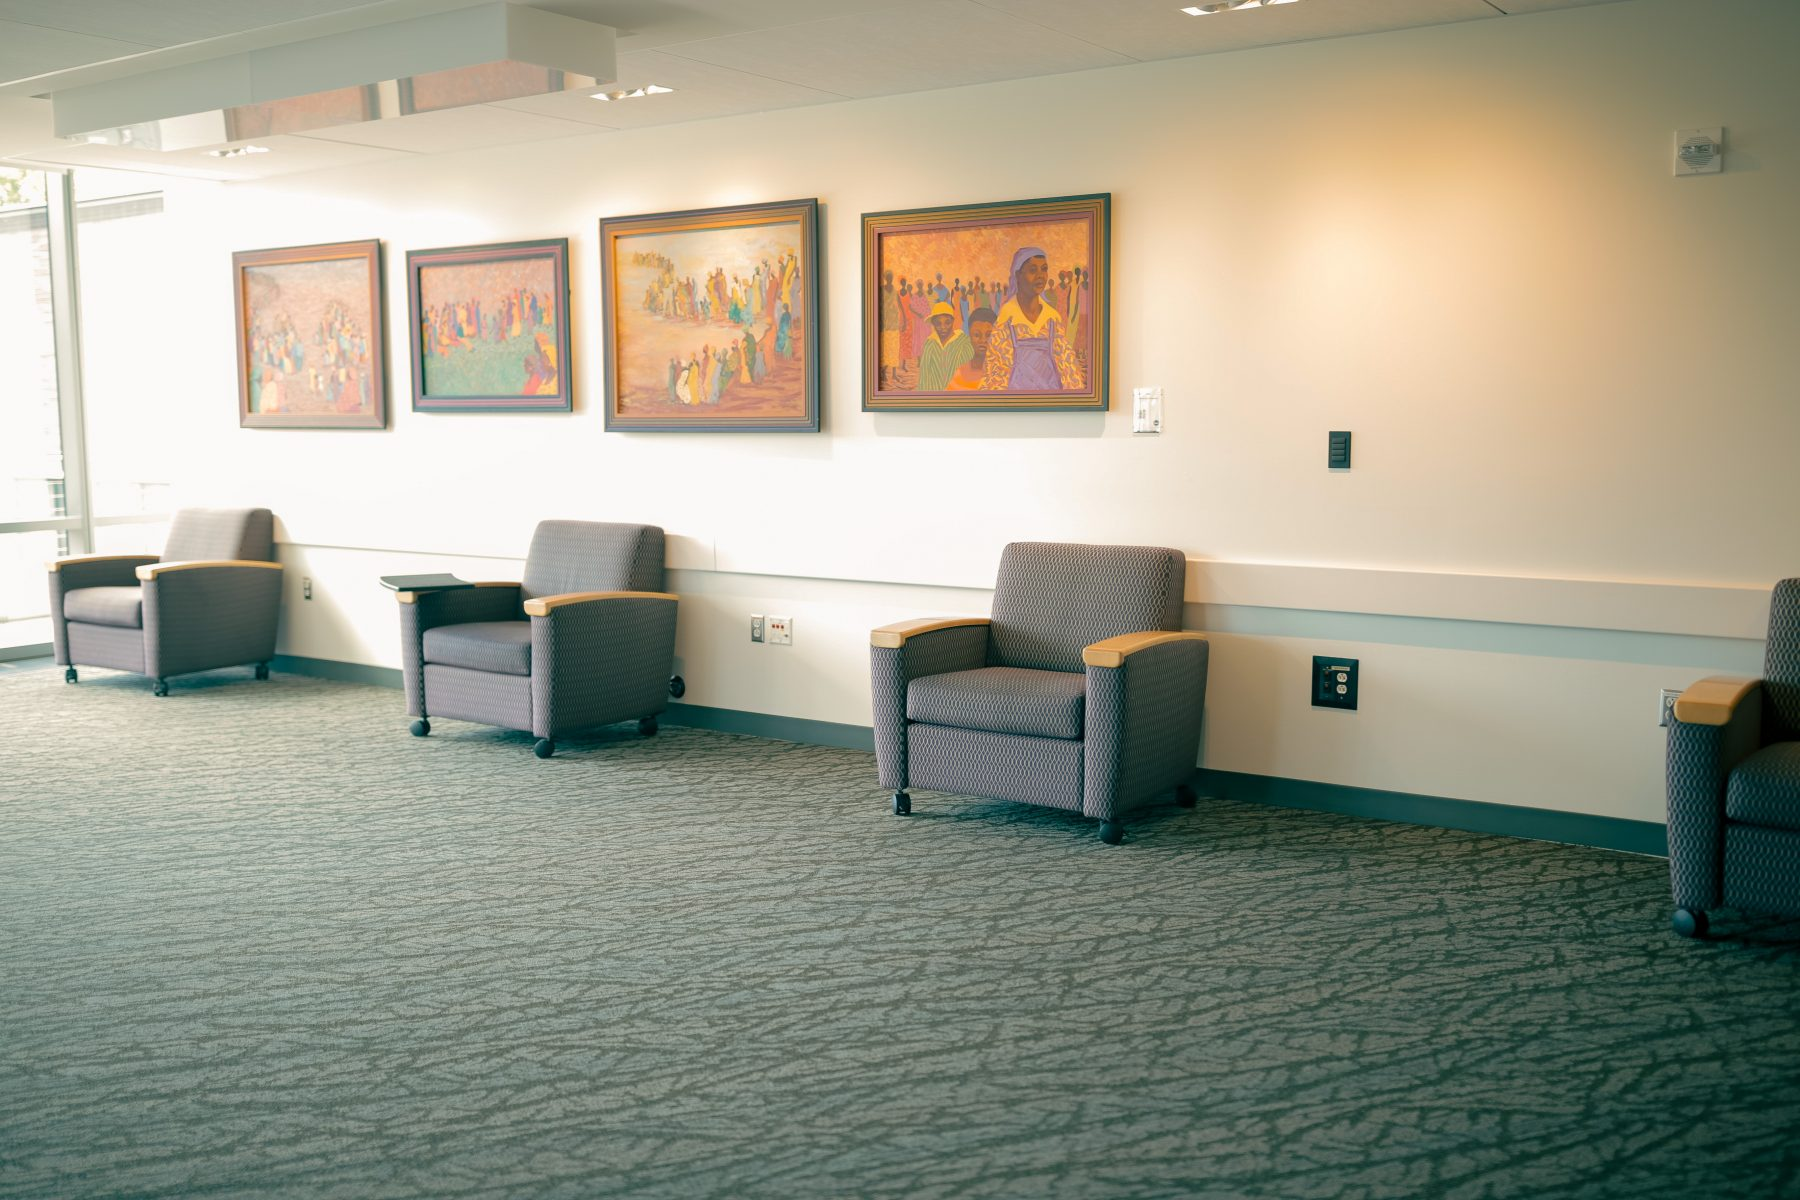 South Pre-Function is an open space with soft seating.